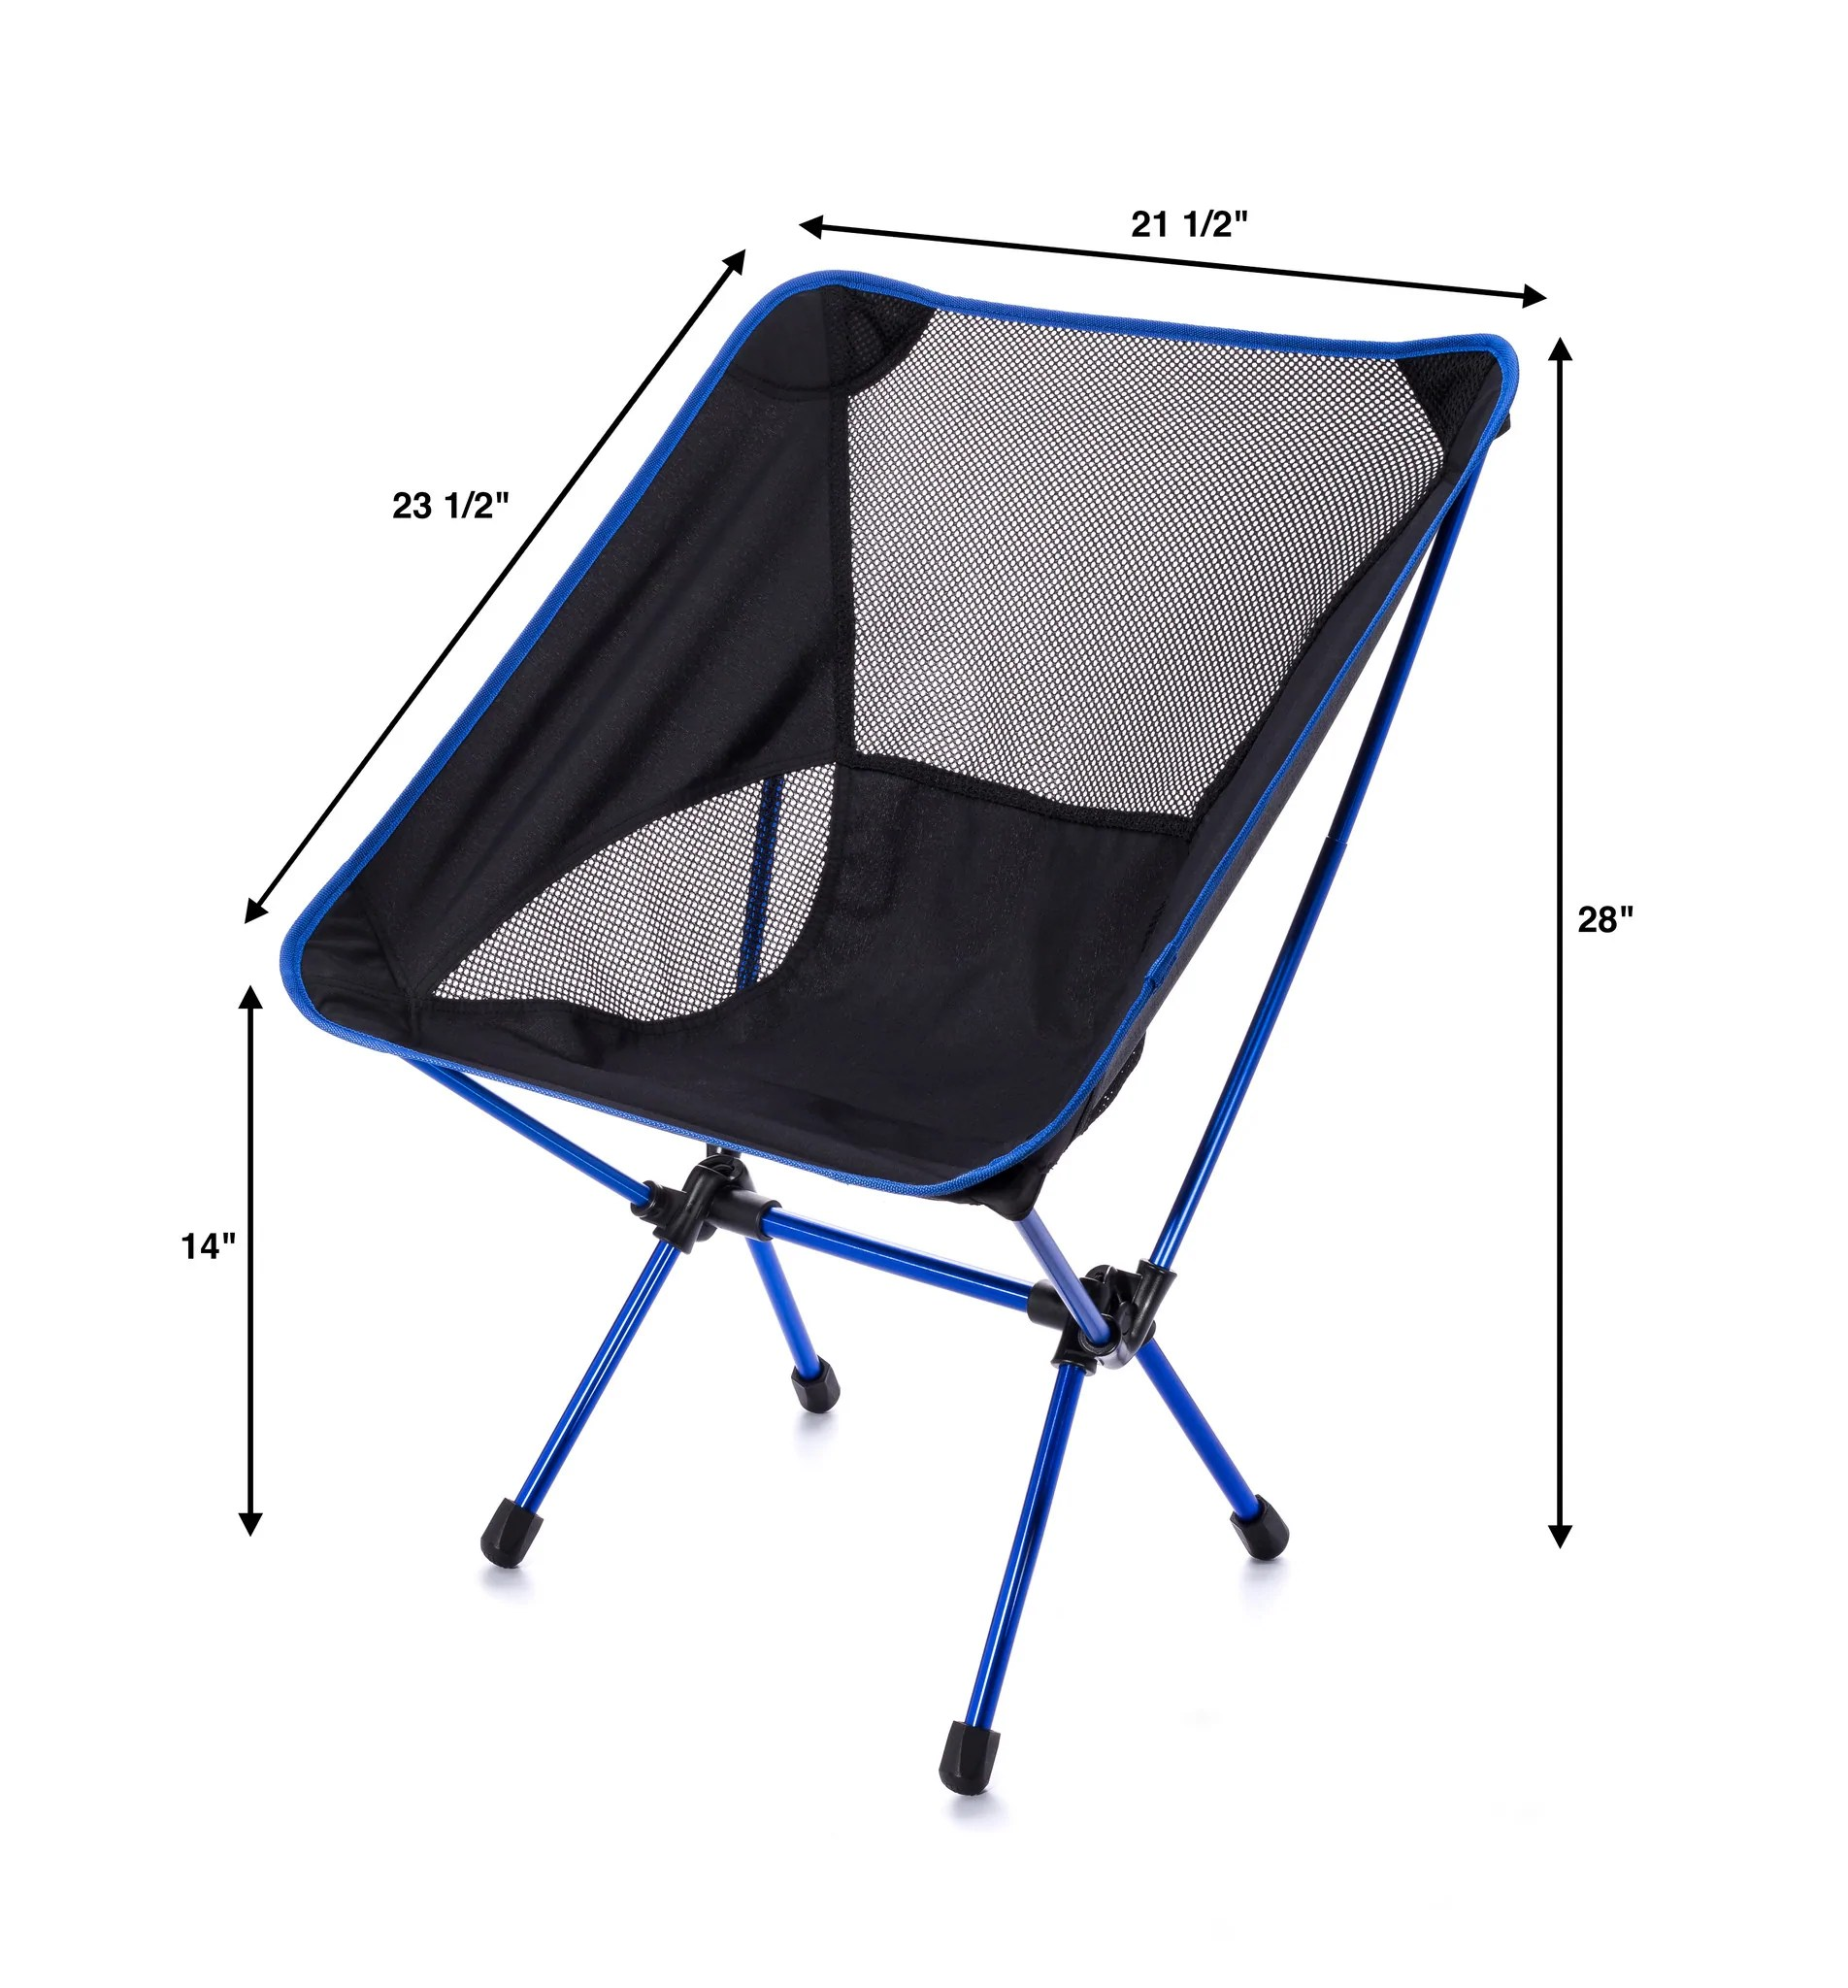 compact camping chair rocking repair kit trekultra portable lightweight camp with bag